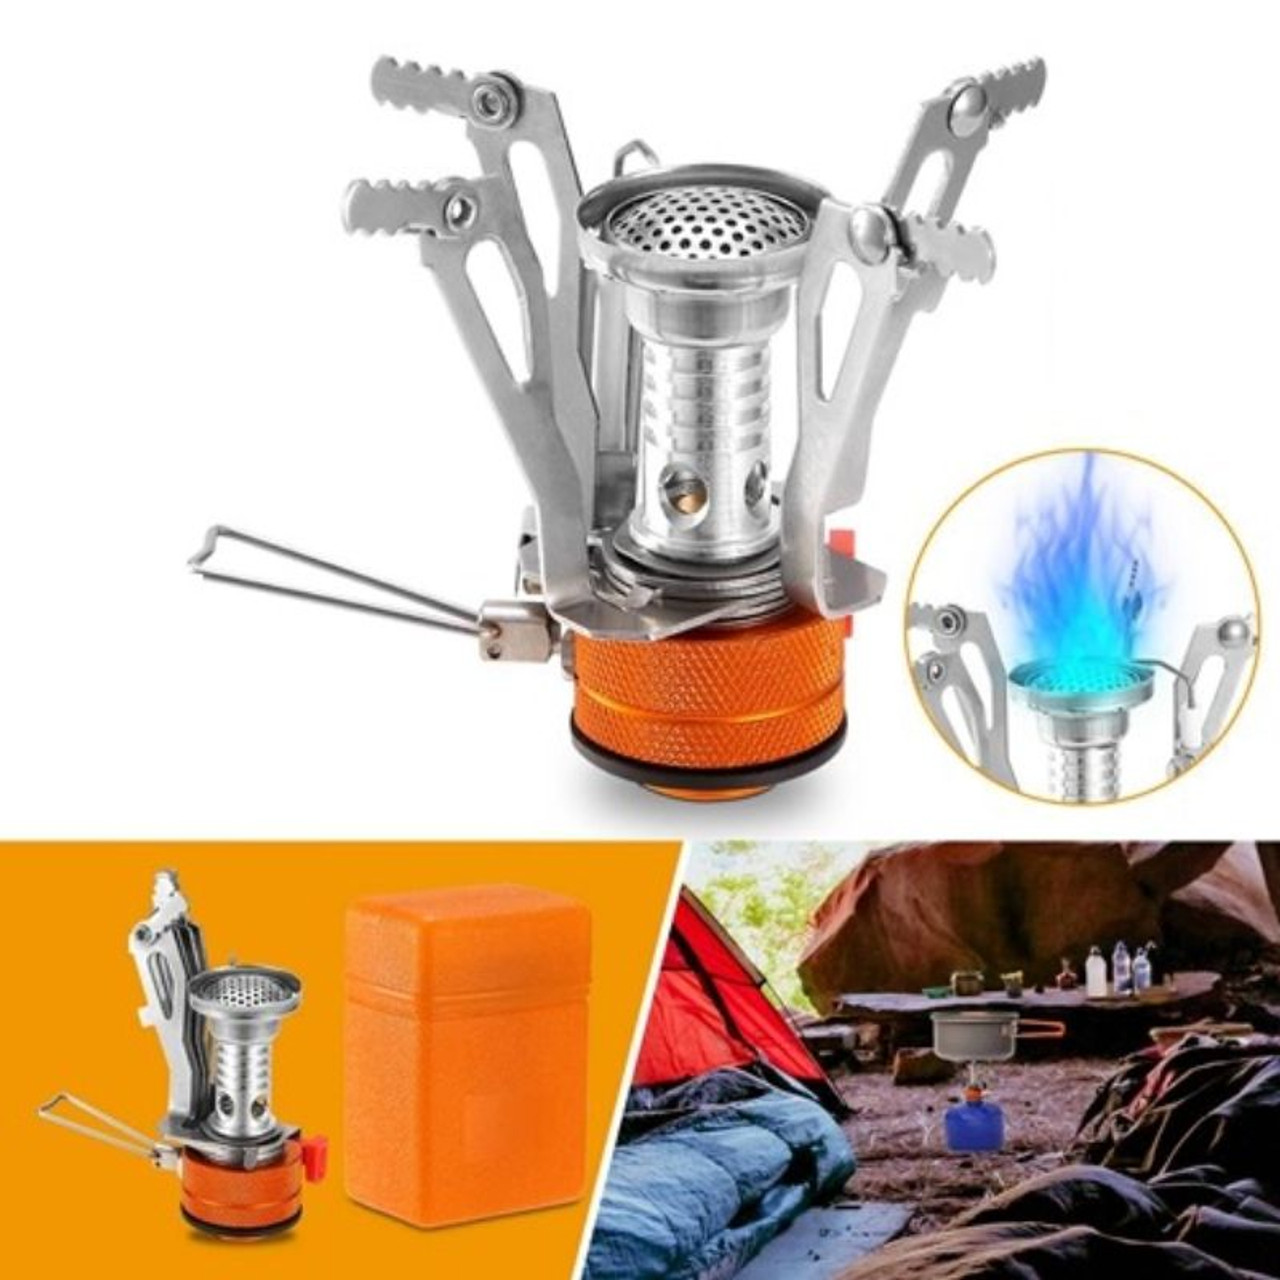 Ultralight Camping Stove, Portable Hiking Stove, Piezo Ignition